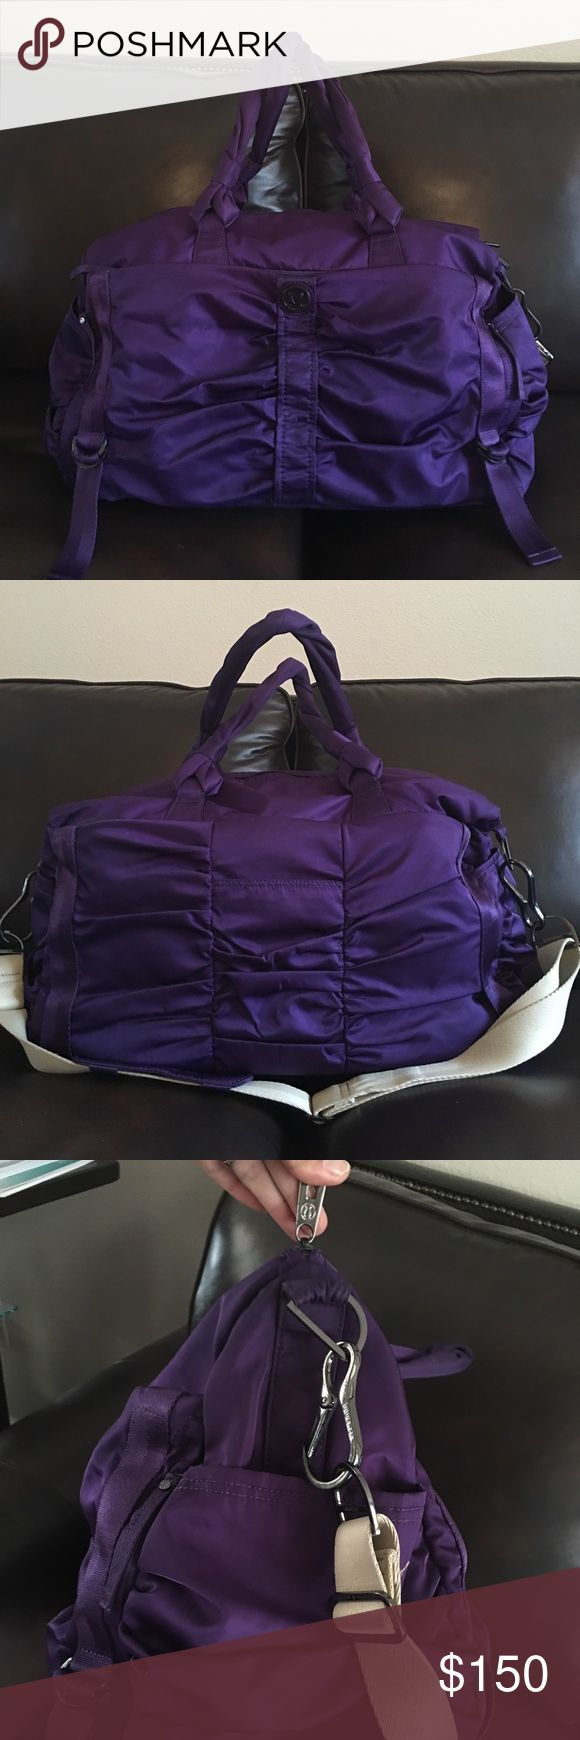 Lululemon bon voyage overnight bag In excellent used condition... lululemon athletica Bags Travel Bags